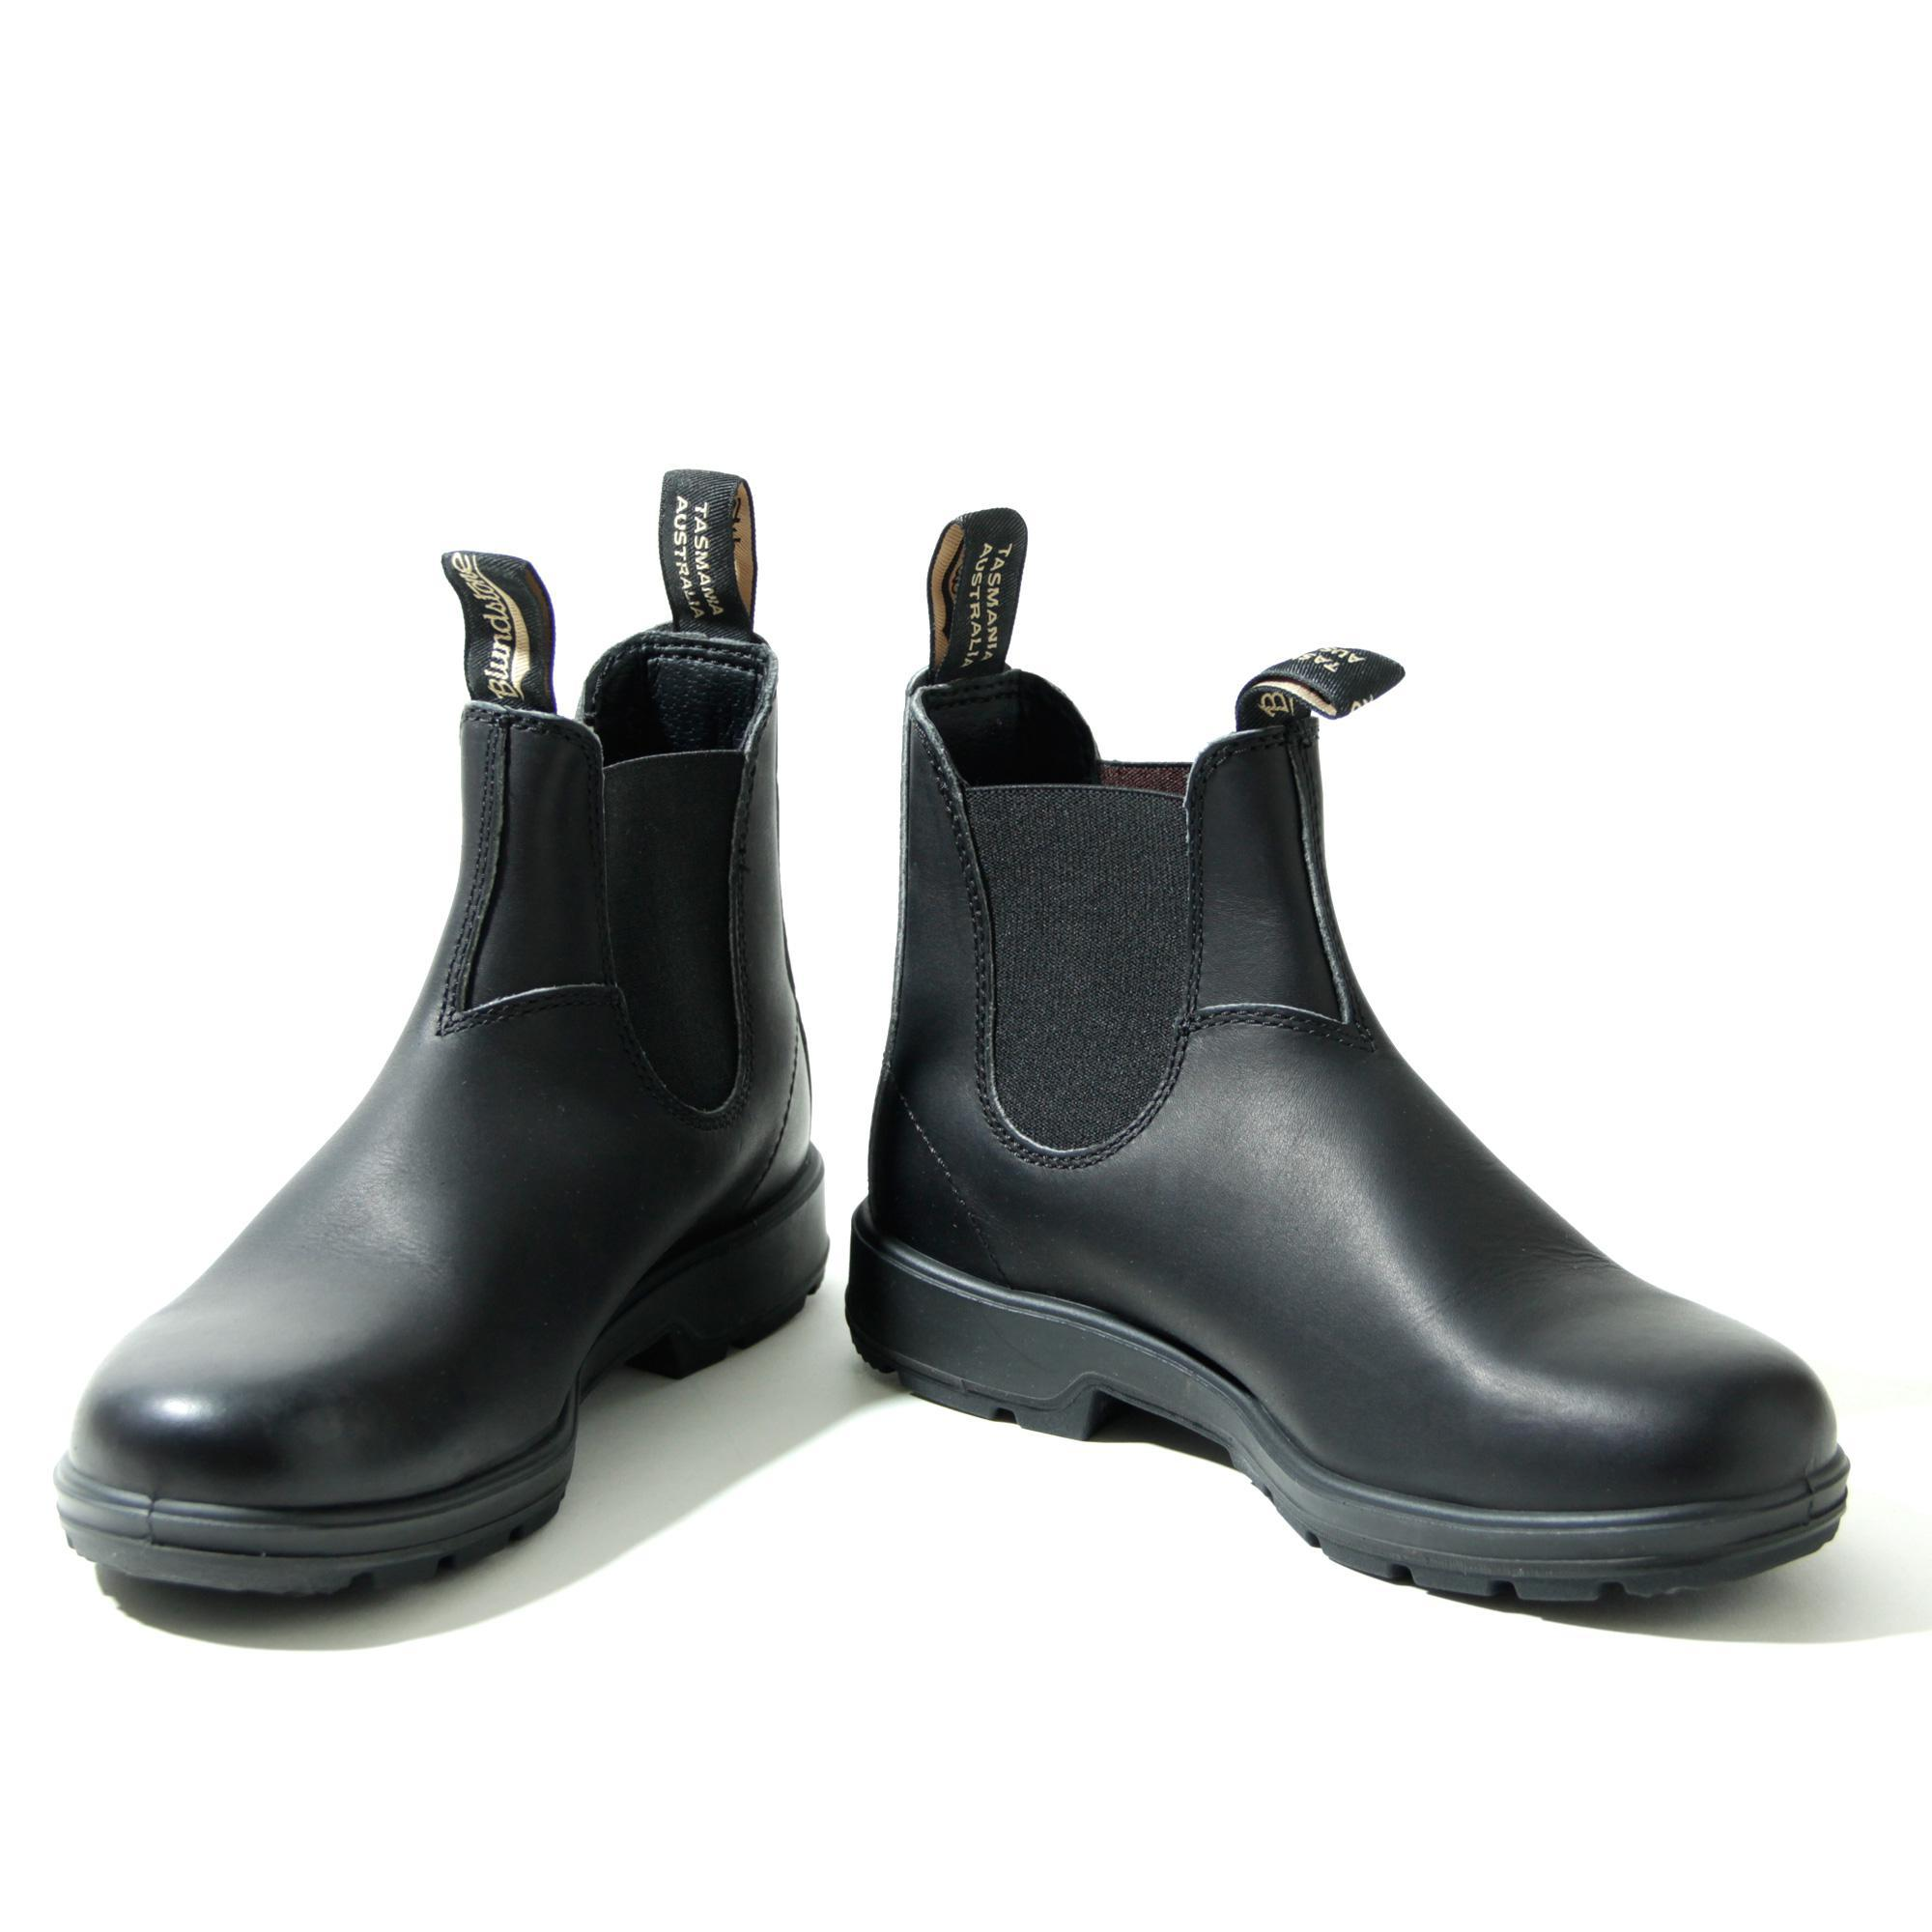 Blundstone #510 ORIGINALS